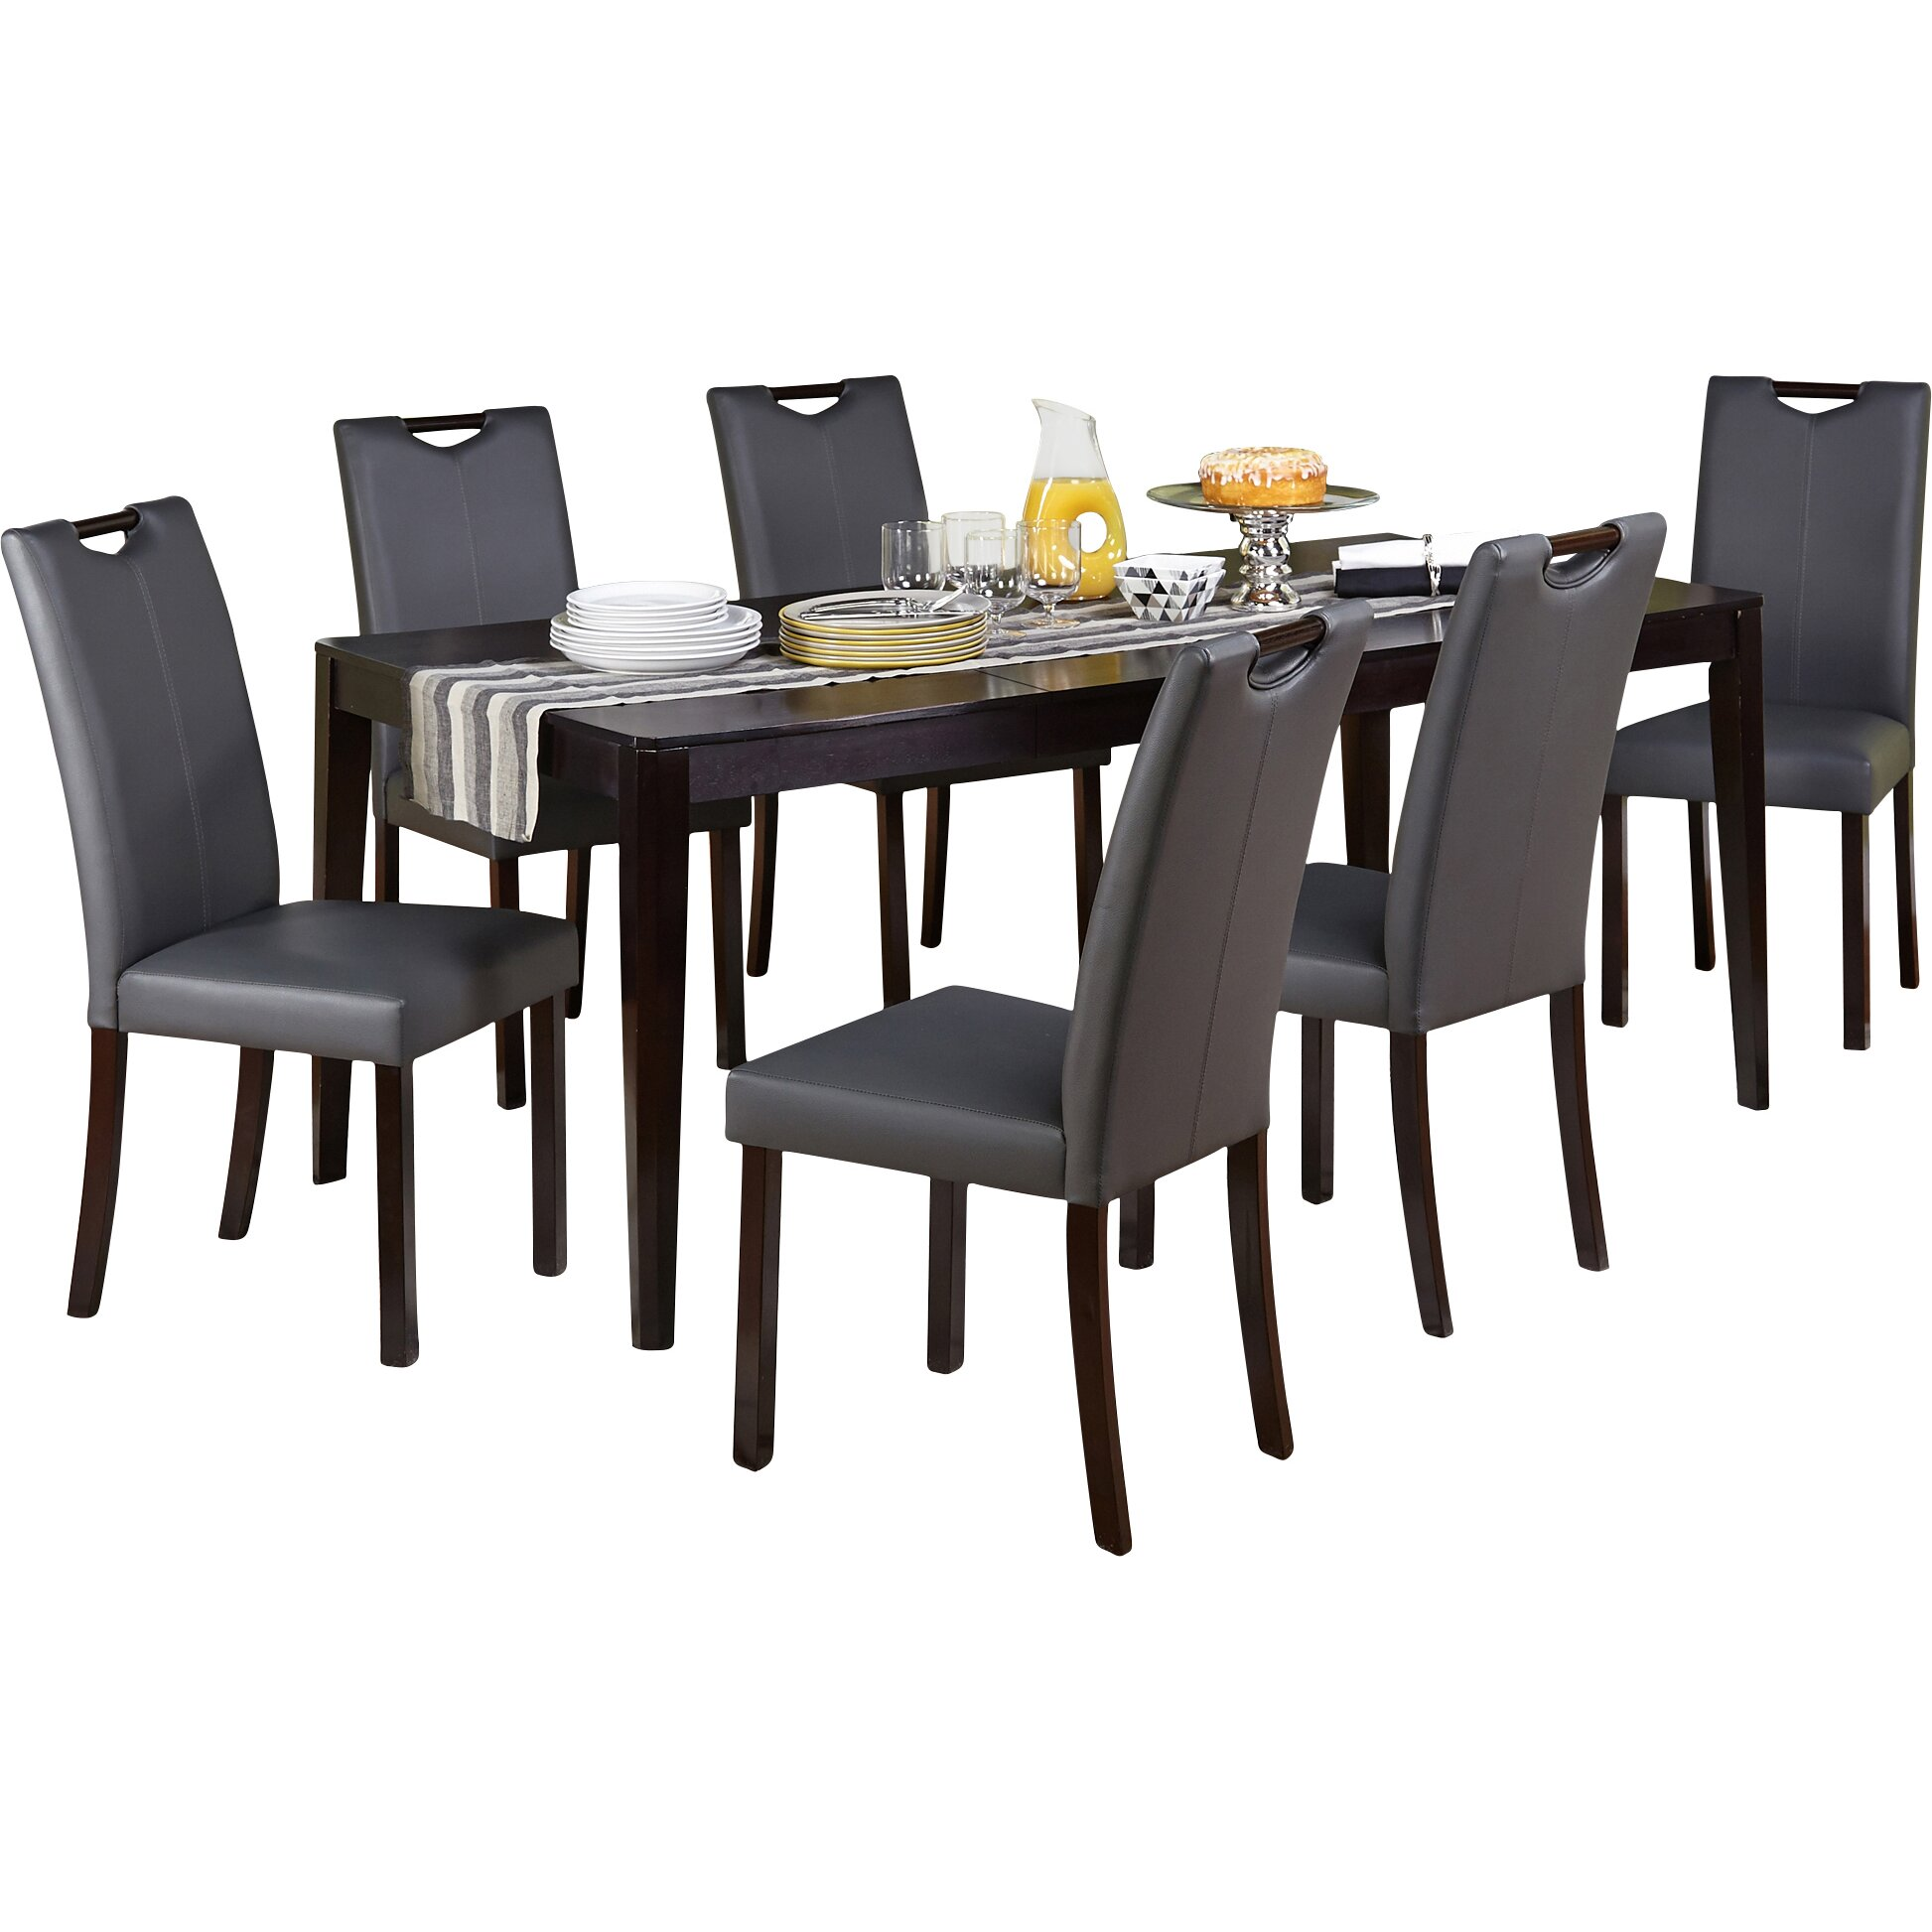 Tms tilo 7 piece dining set reviews wayfair for Furniture 7 reviews